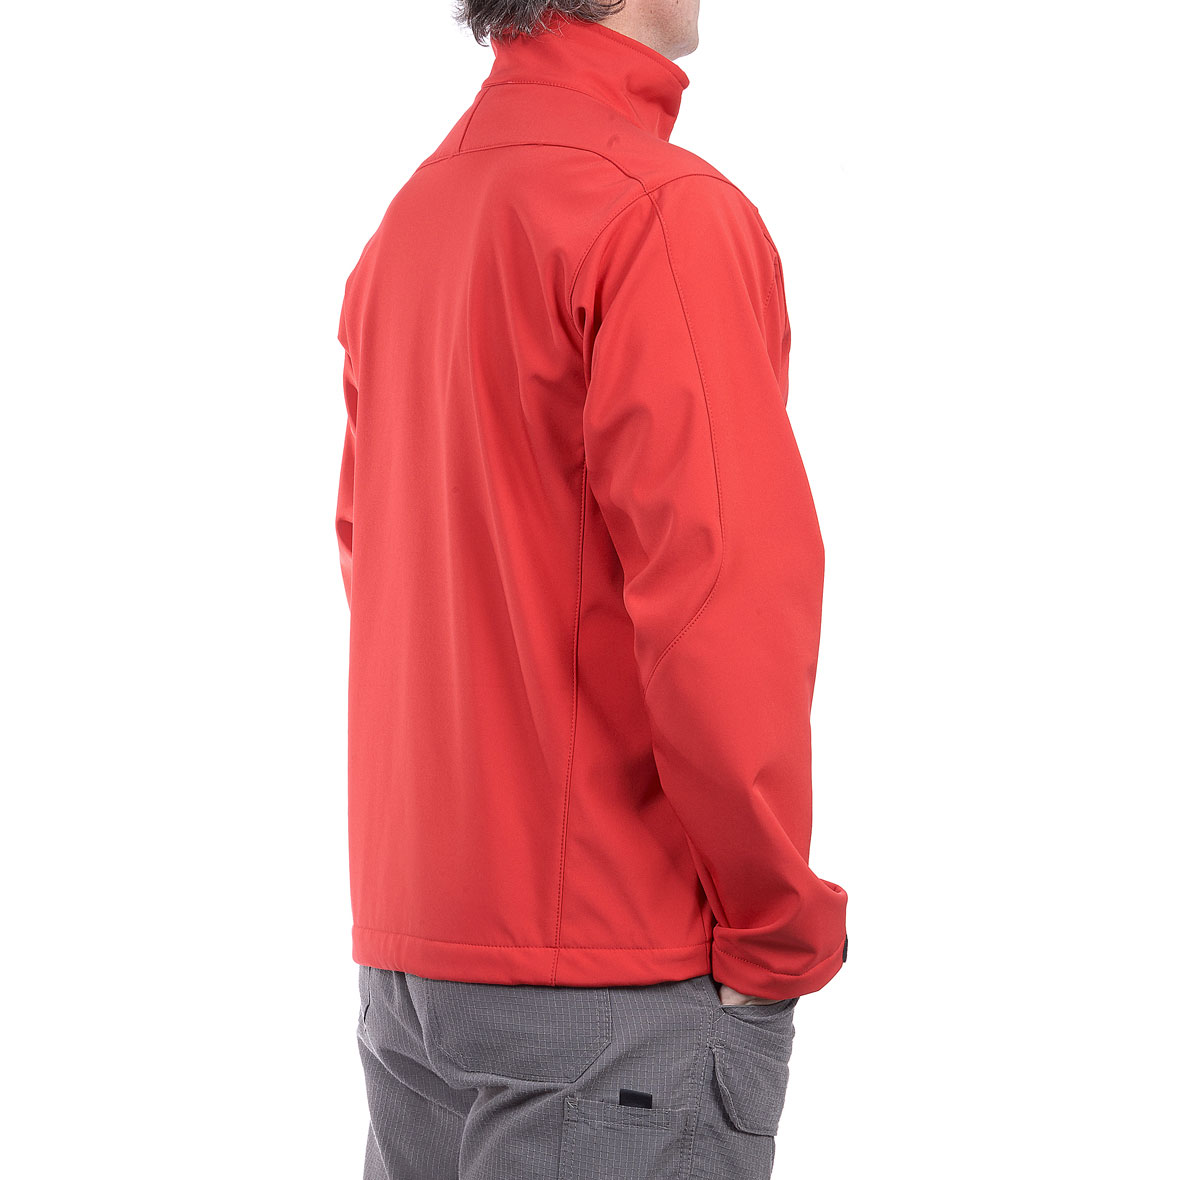 MG 8558 4 5SO50171030M Campera Ciclon Rojo  - Campera Ciclon